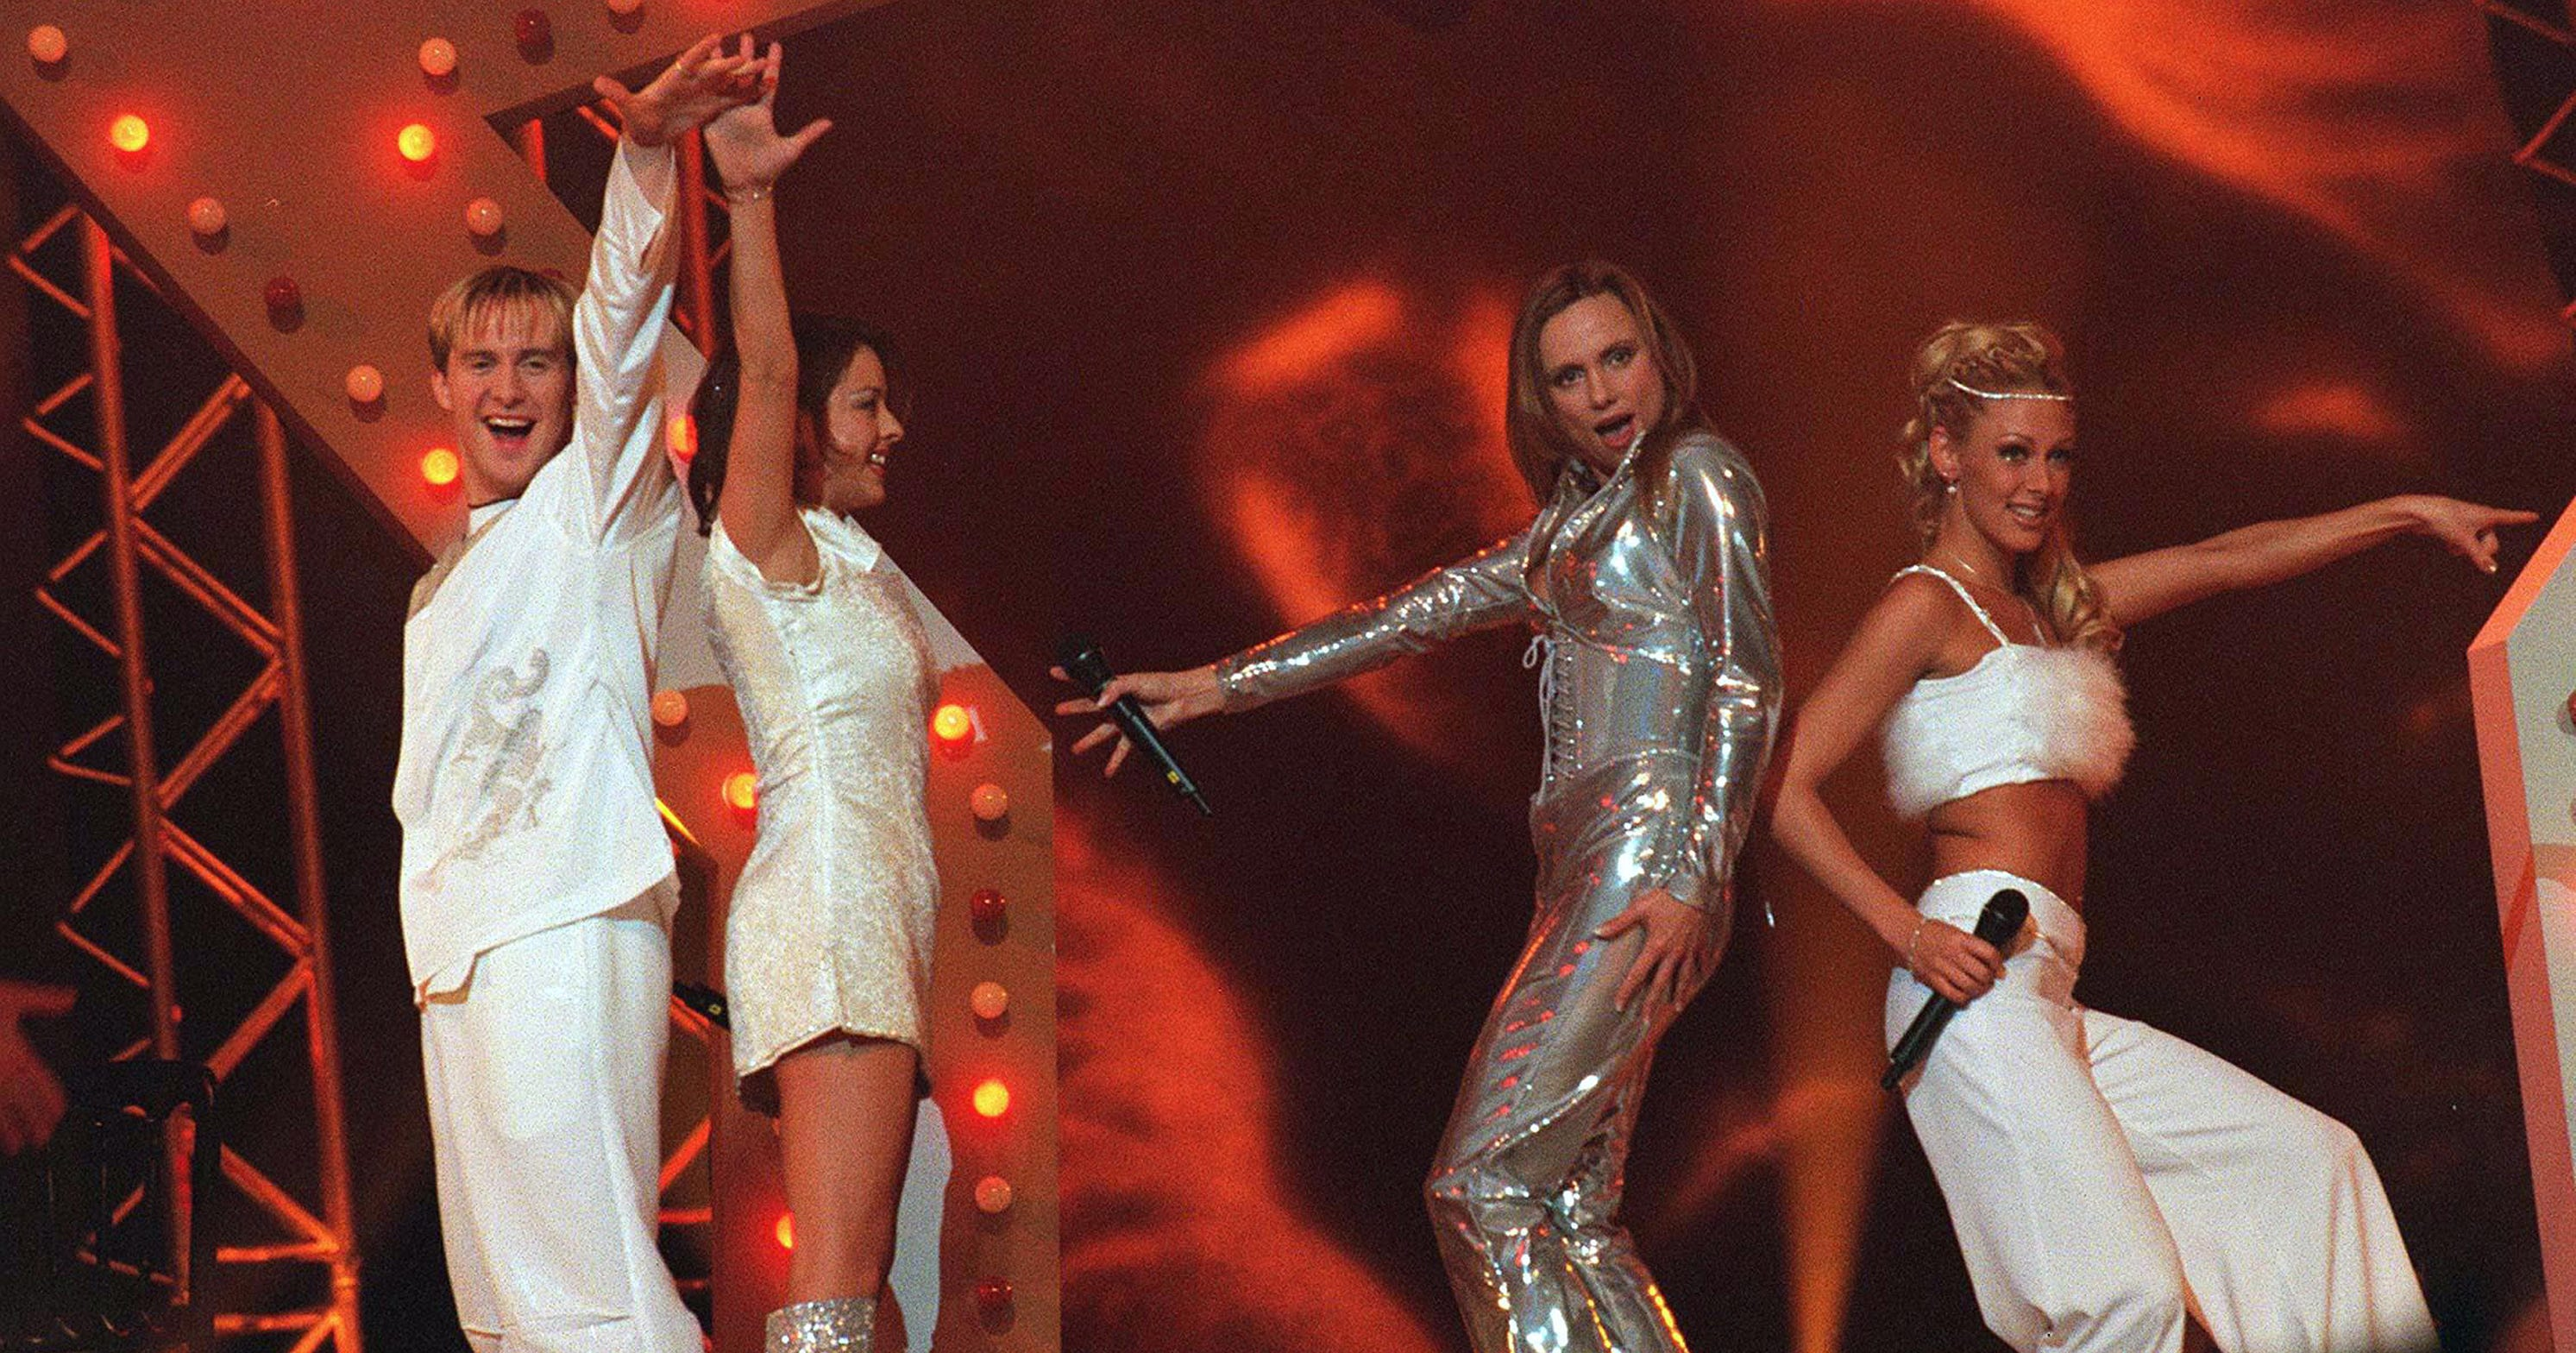 This Is What The Brit Awards Looked Like In 1999